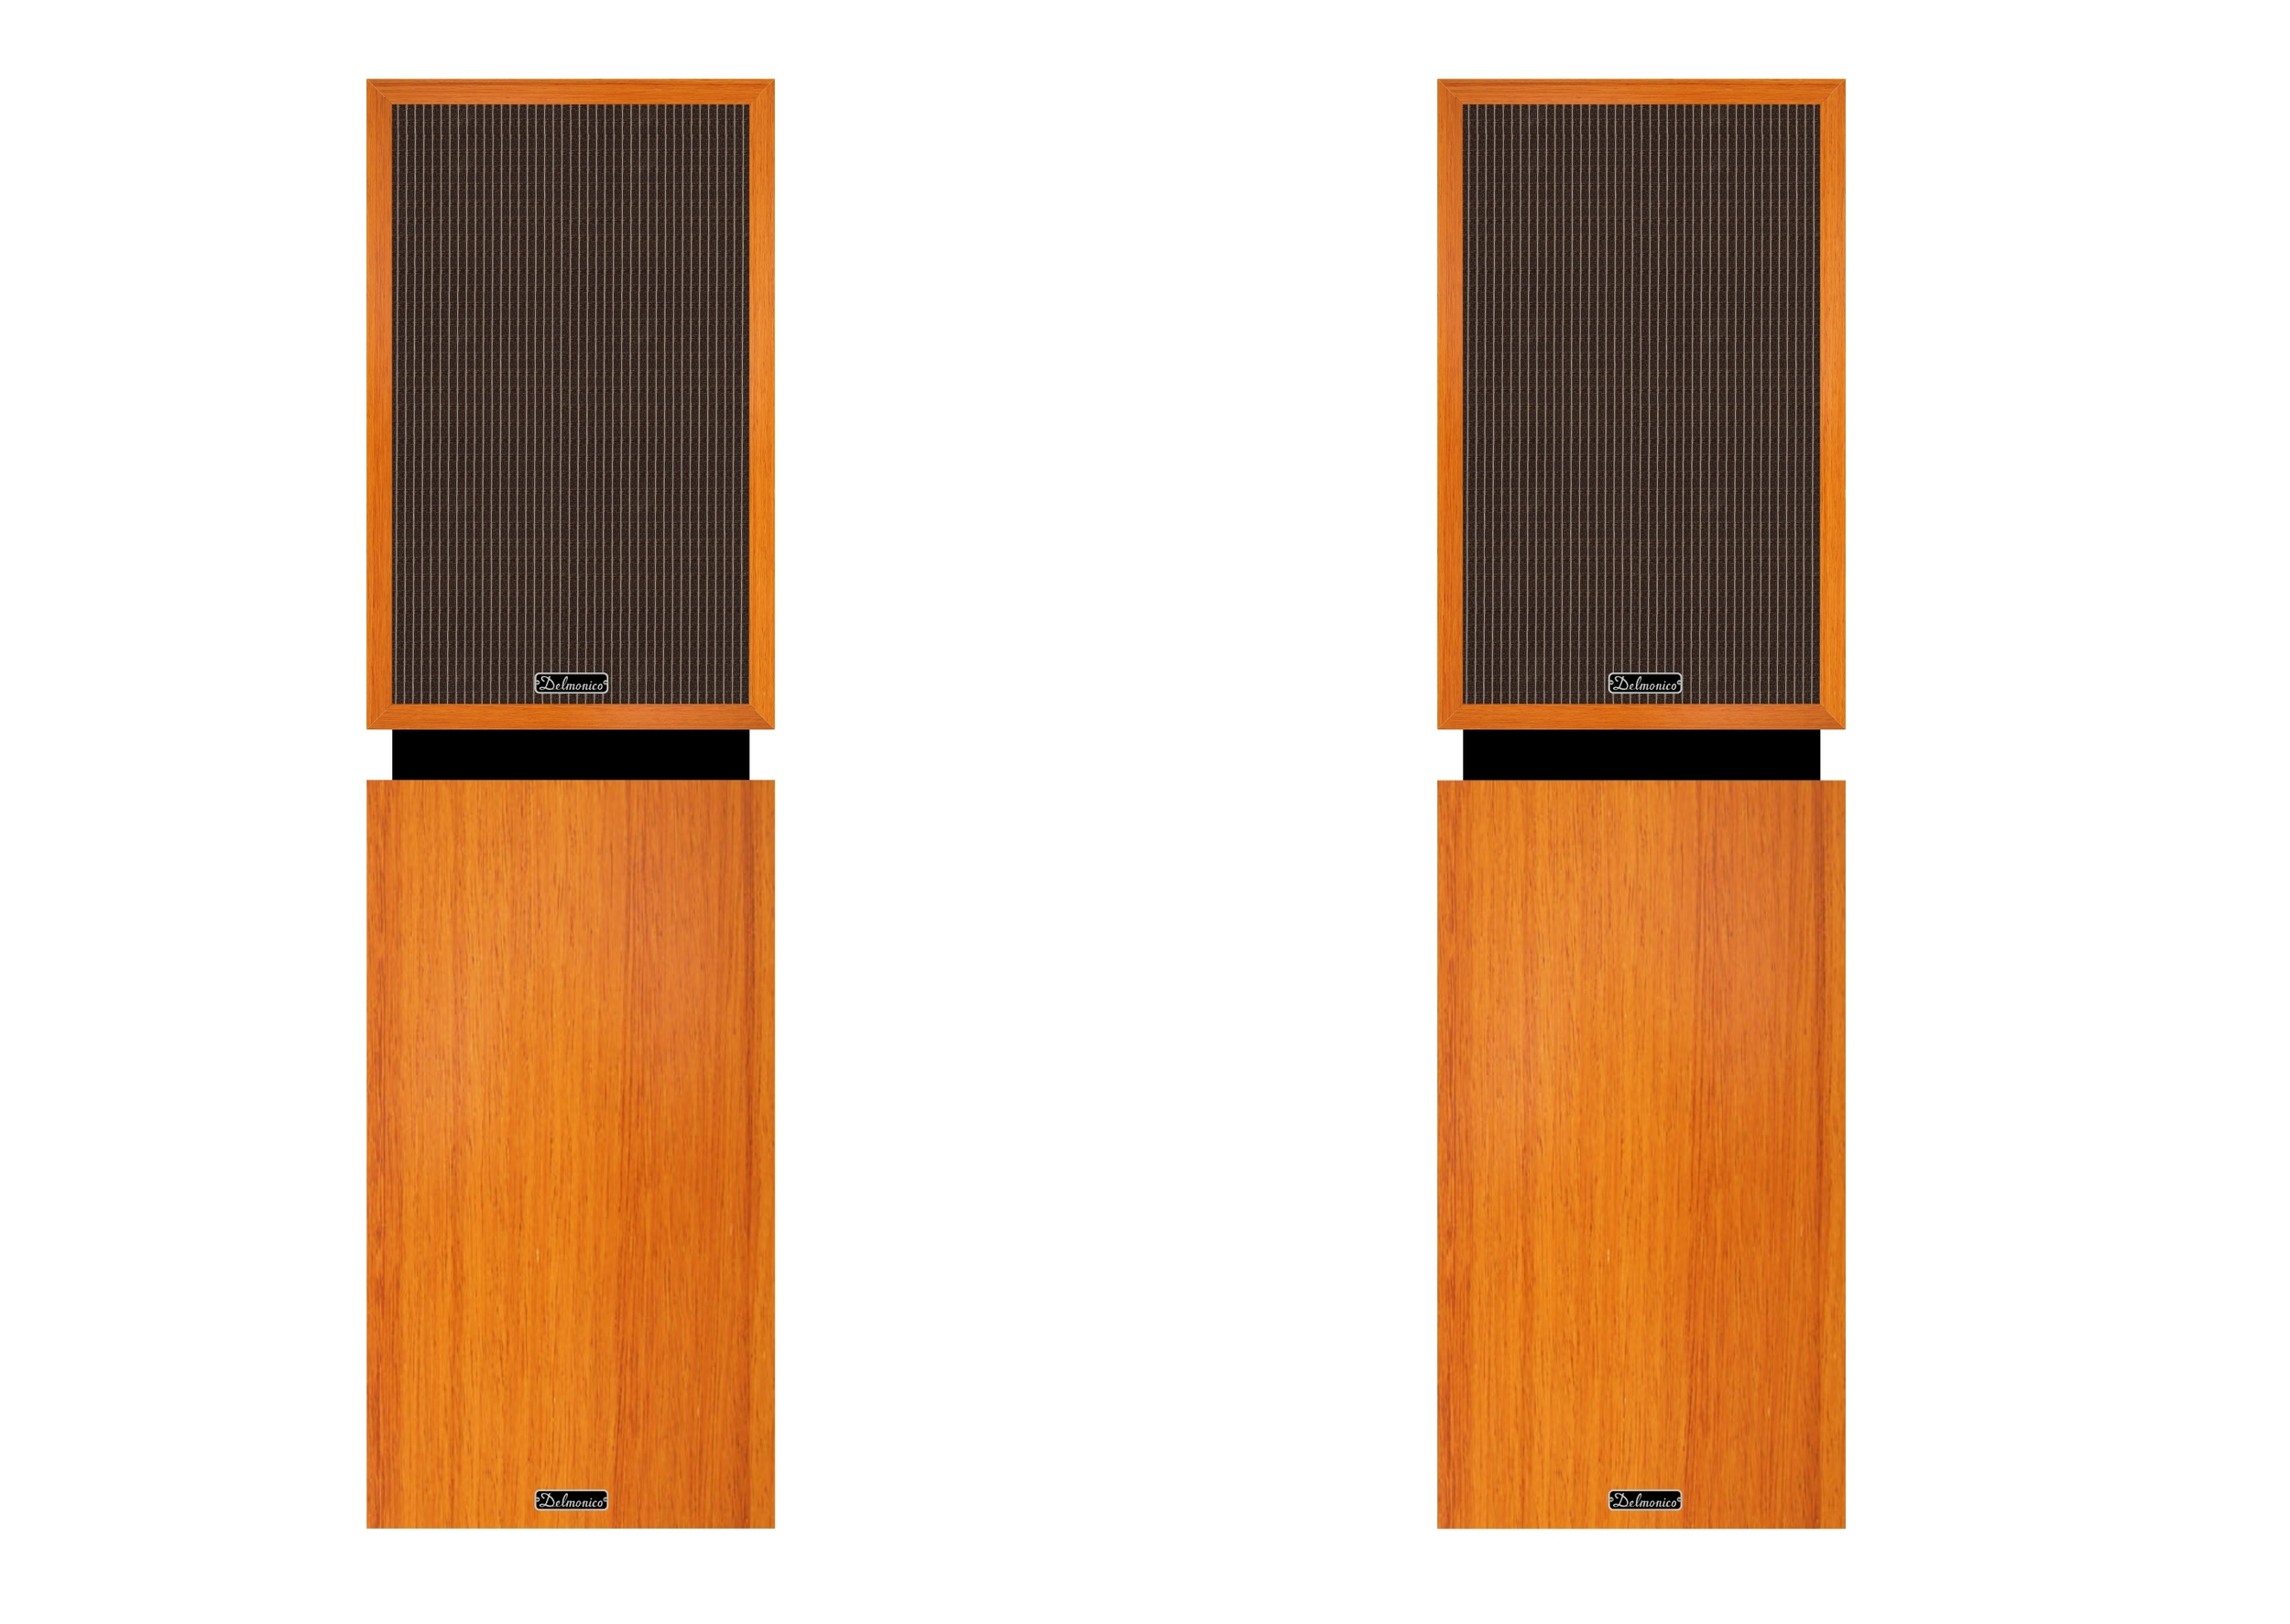 Small loudspeakers on optional stands